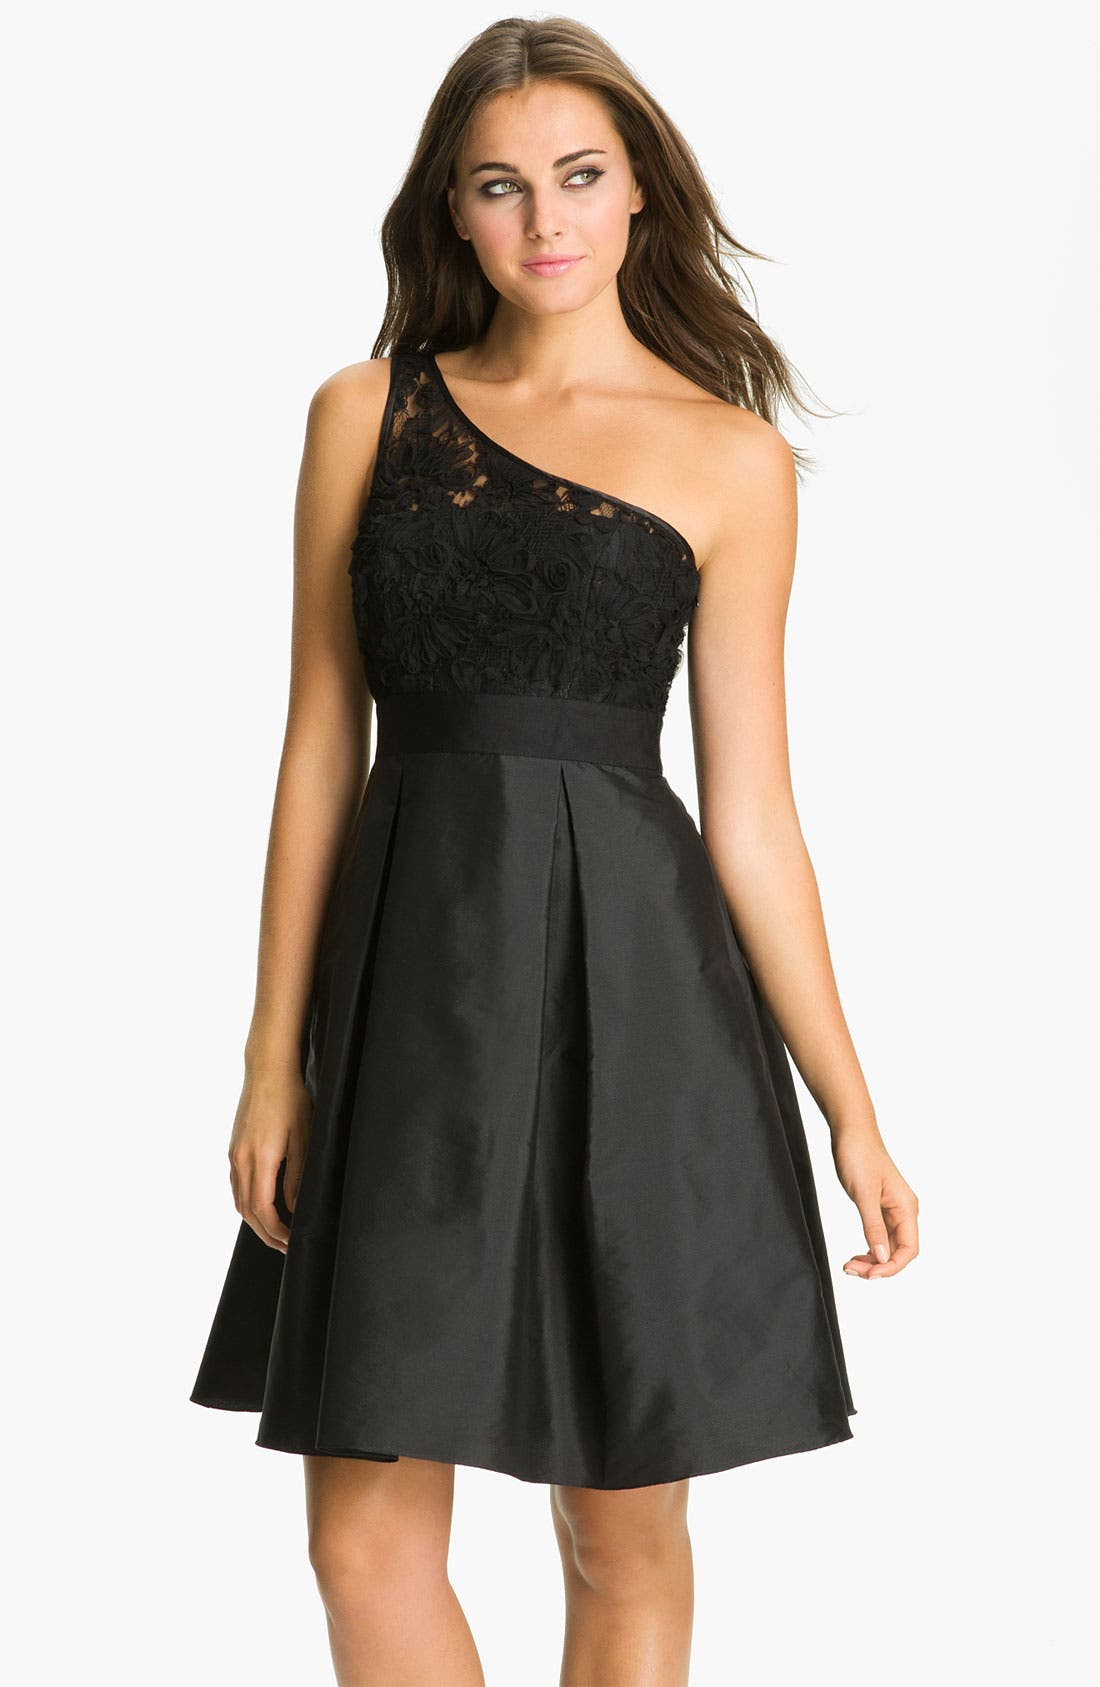 Alternate Image 1 Selected - ML Monique Lhuillier Bridesmaids One-Shoulder Lace & Taffeta Dress (Nordstrom Exclusive)